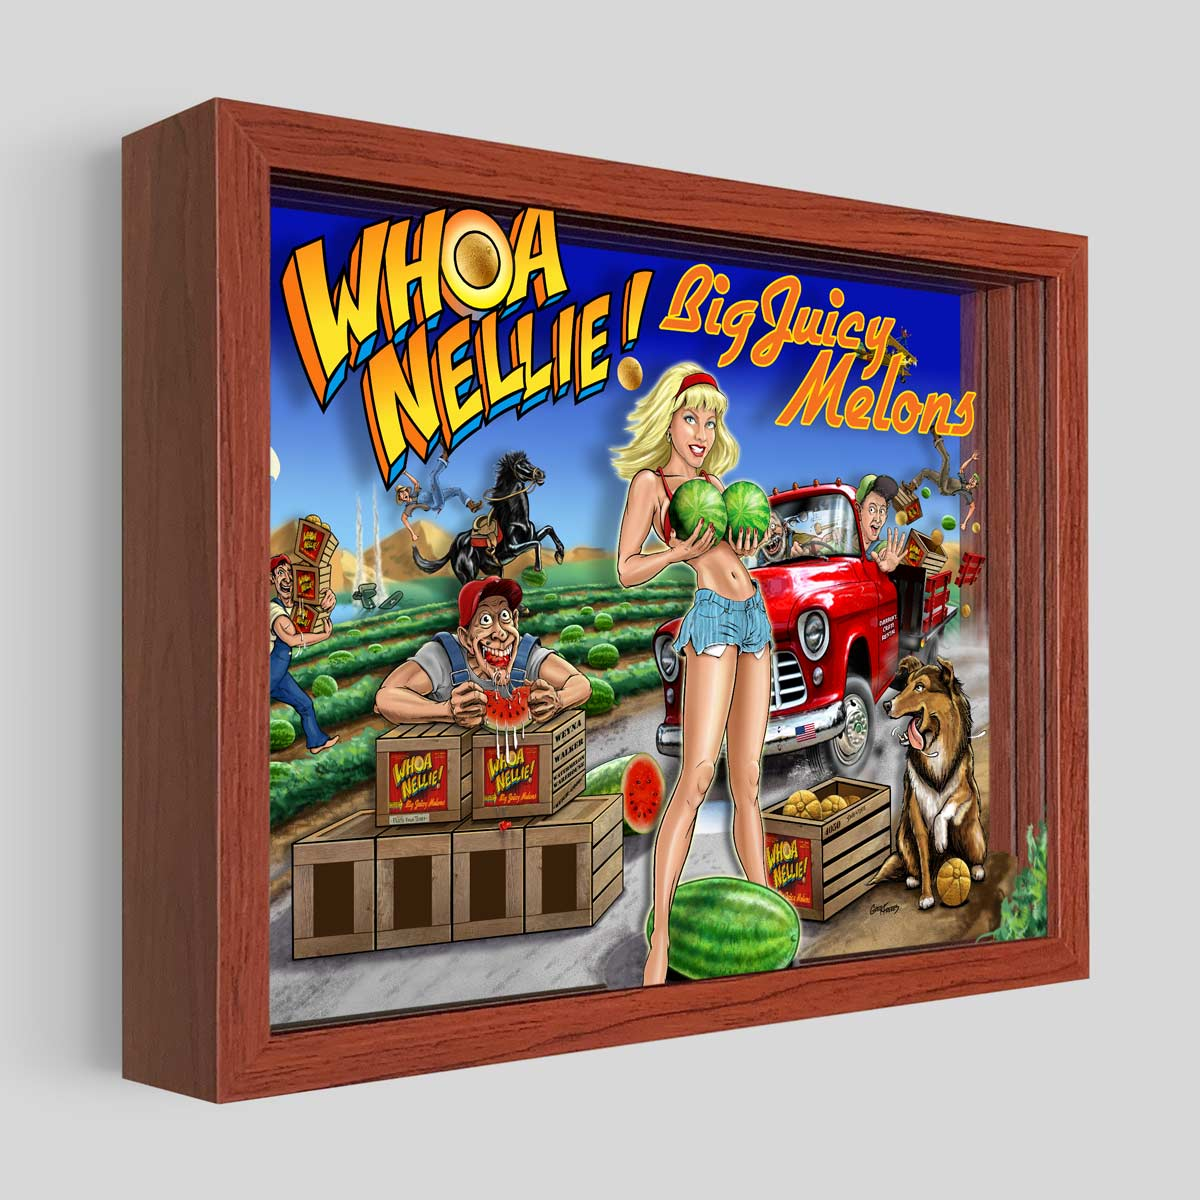 Whoa Nellie Shadowbox Art